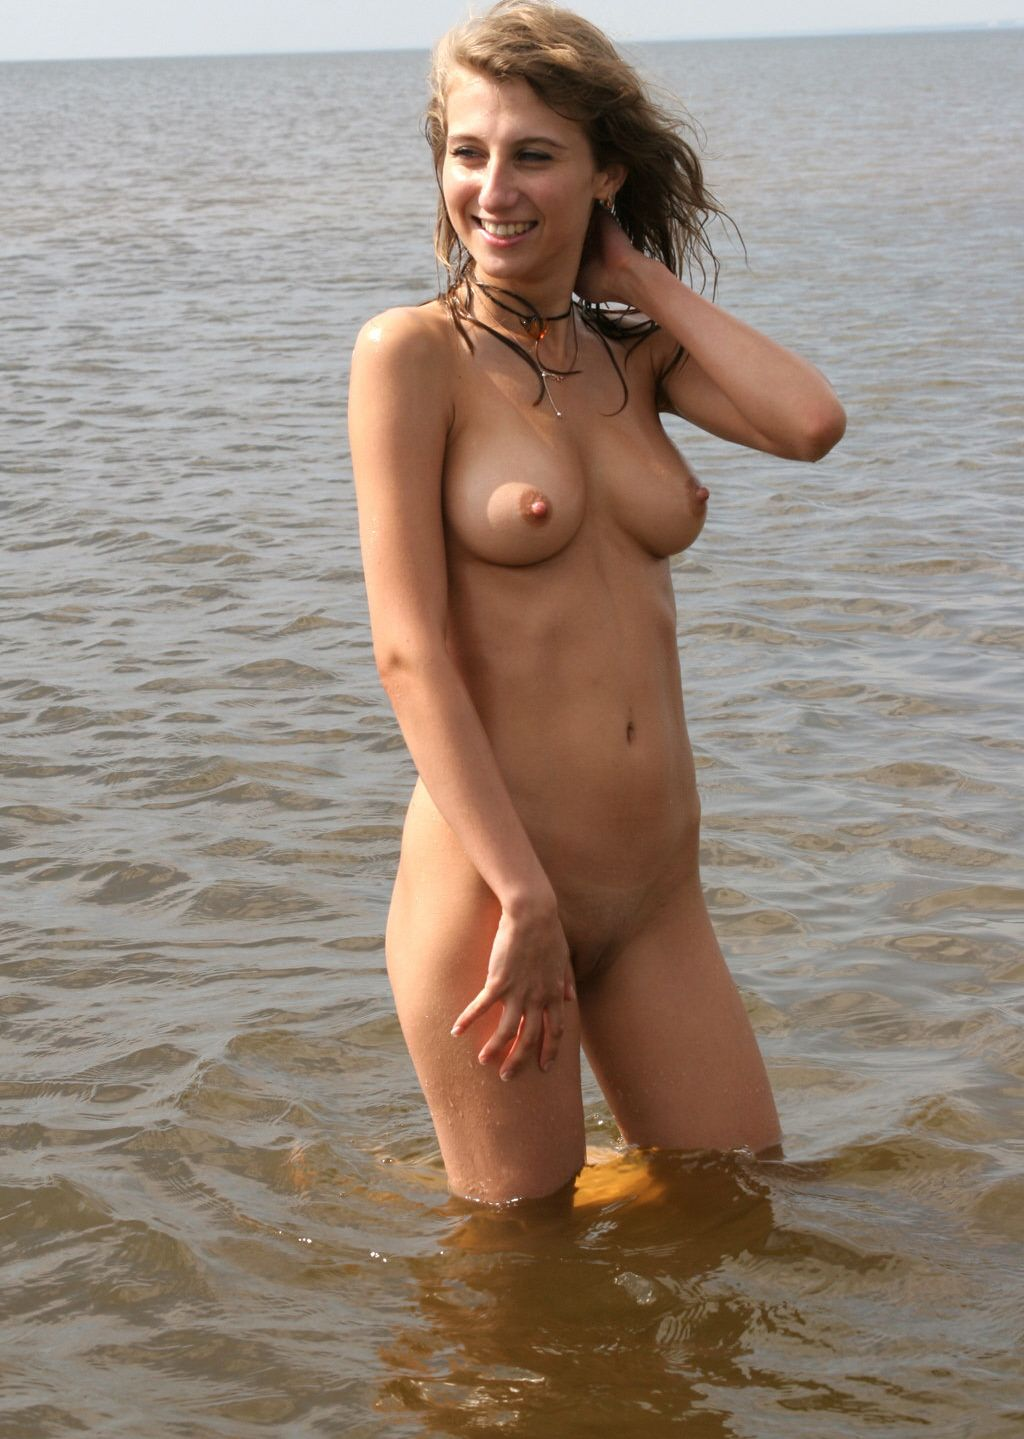 adrian young from no doubt nude